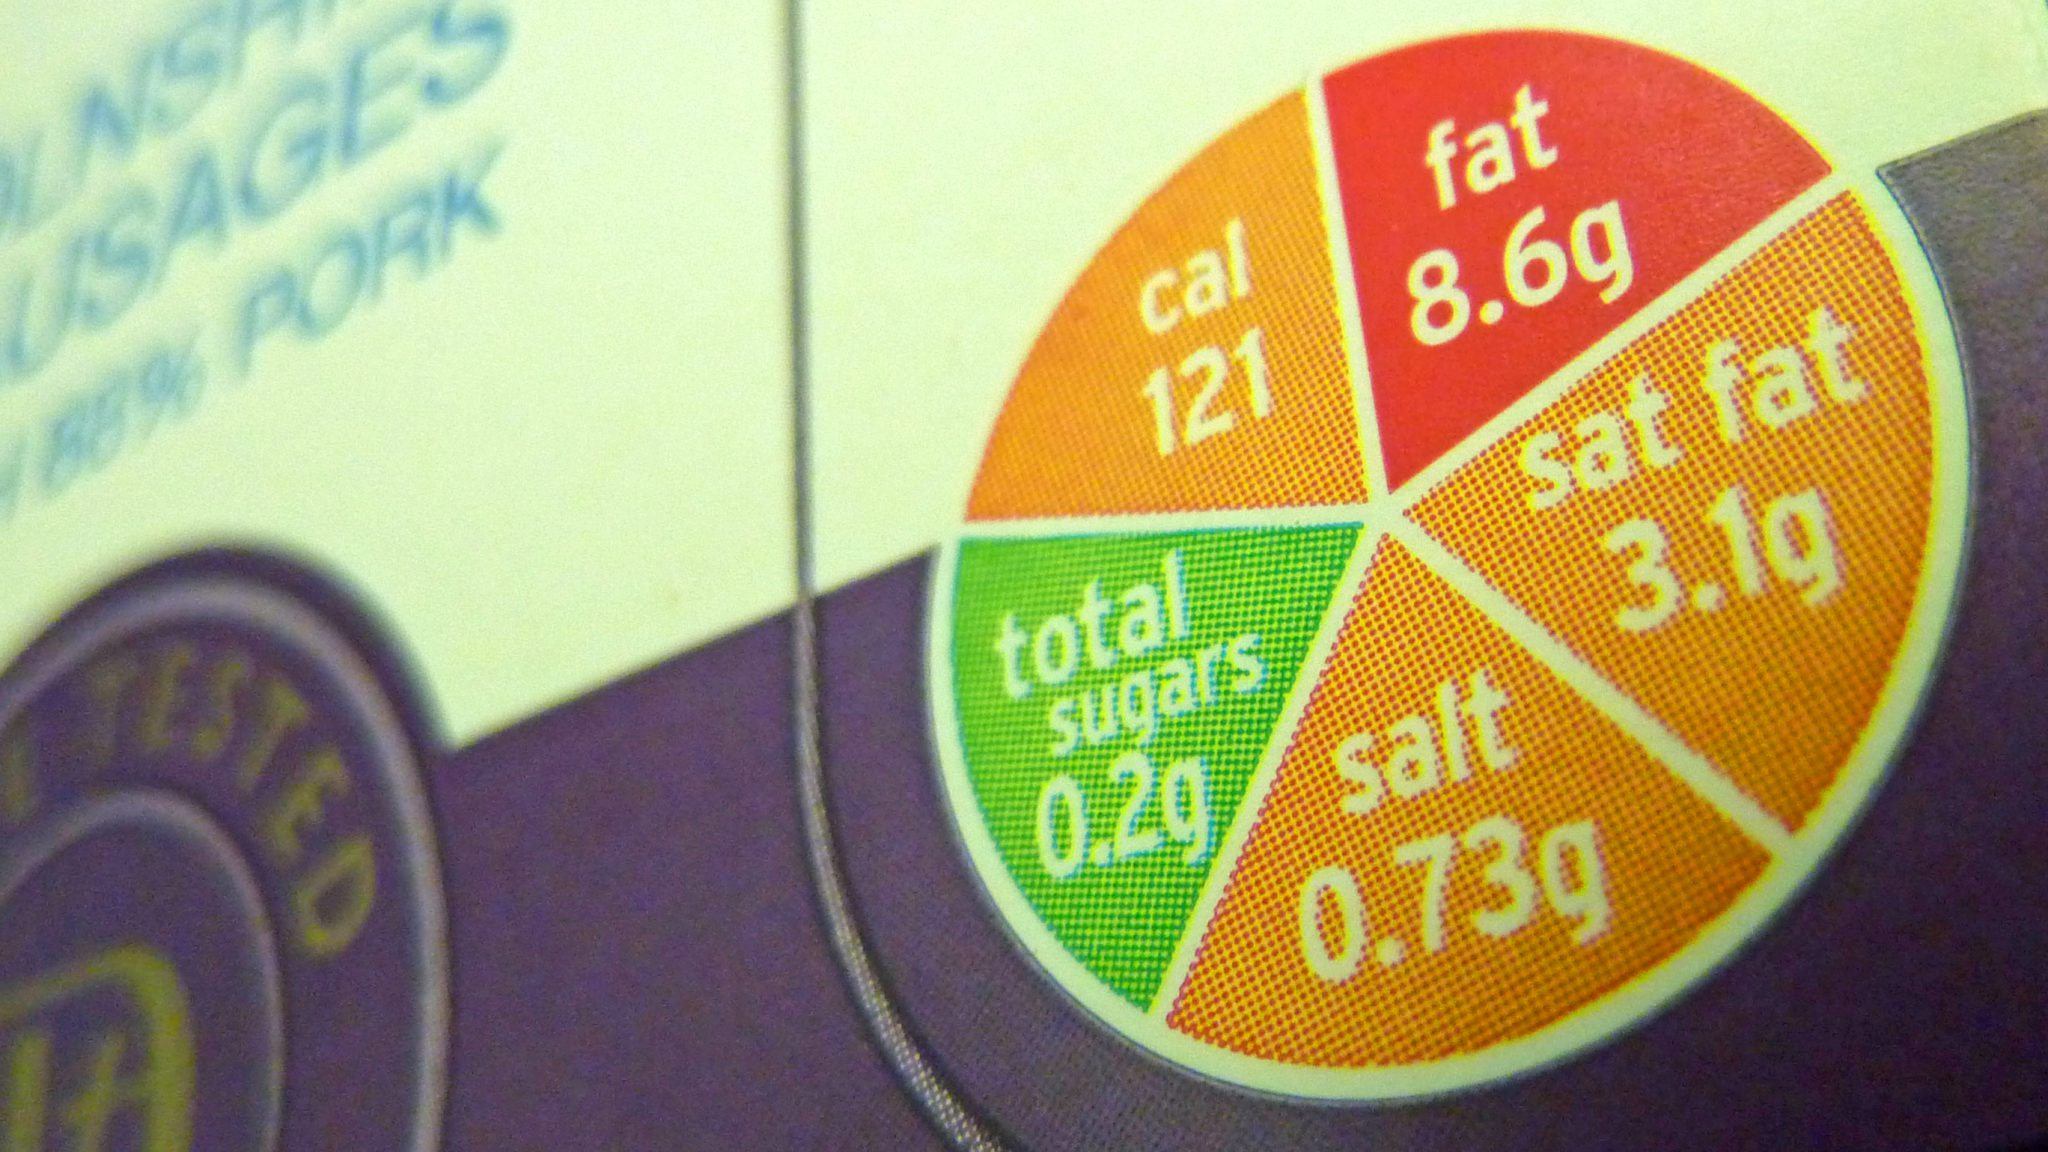 Nutritional information on UK food packaging in the 'traffic-light' format